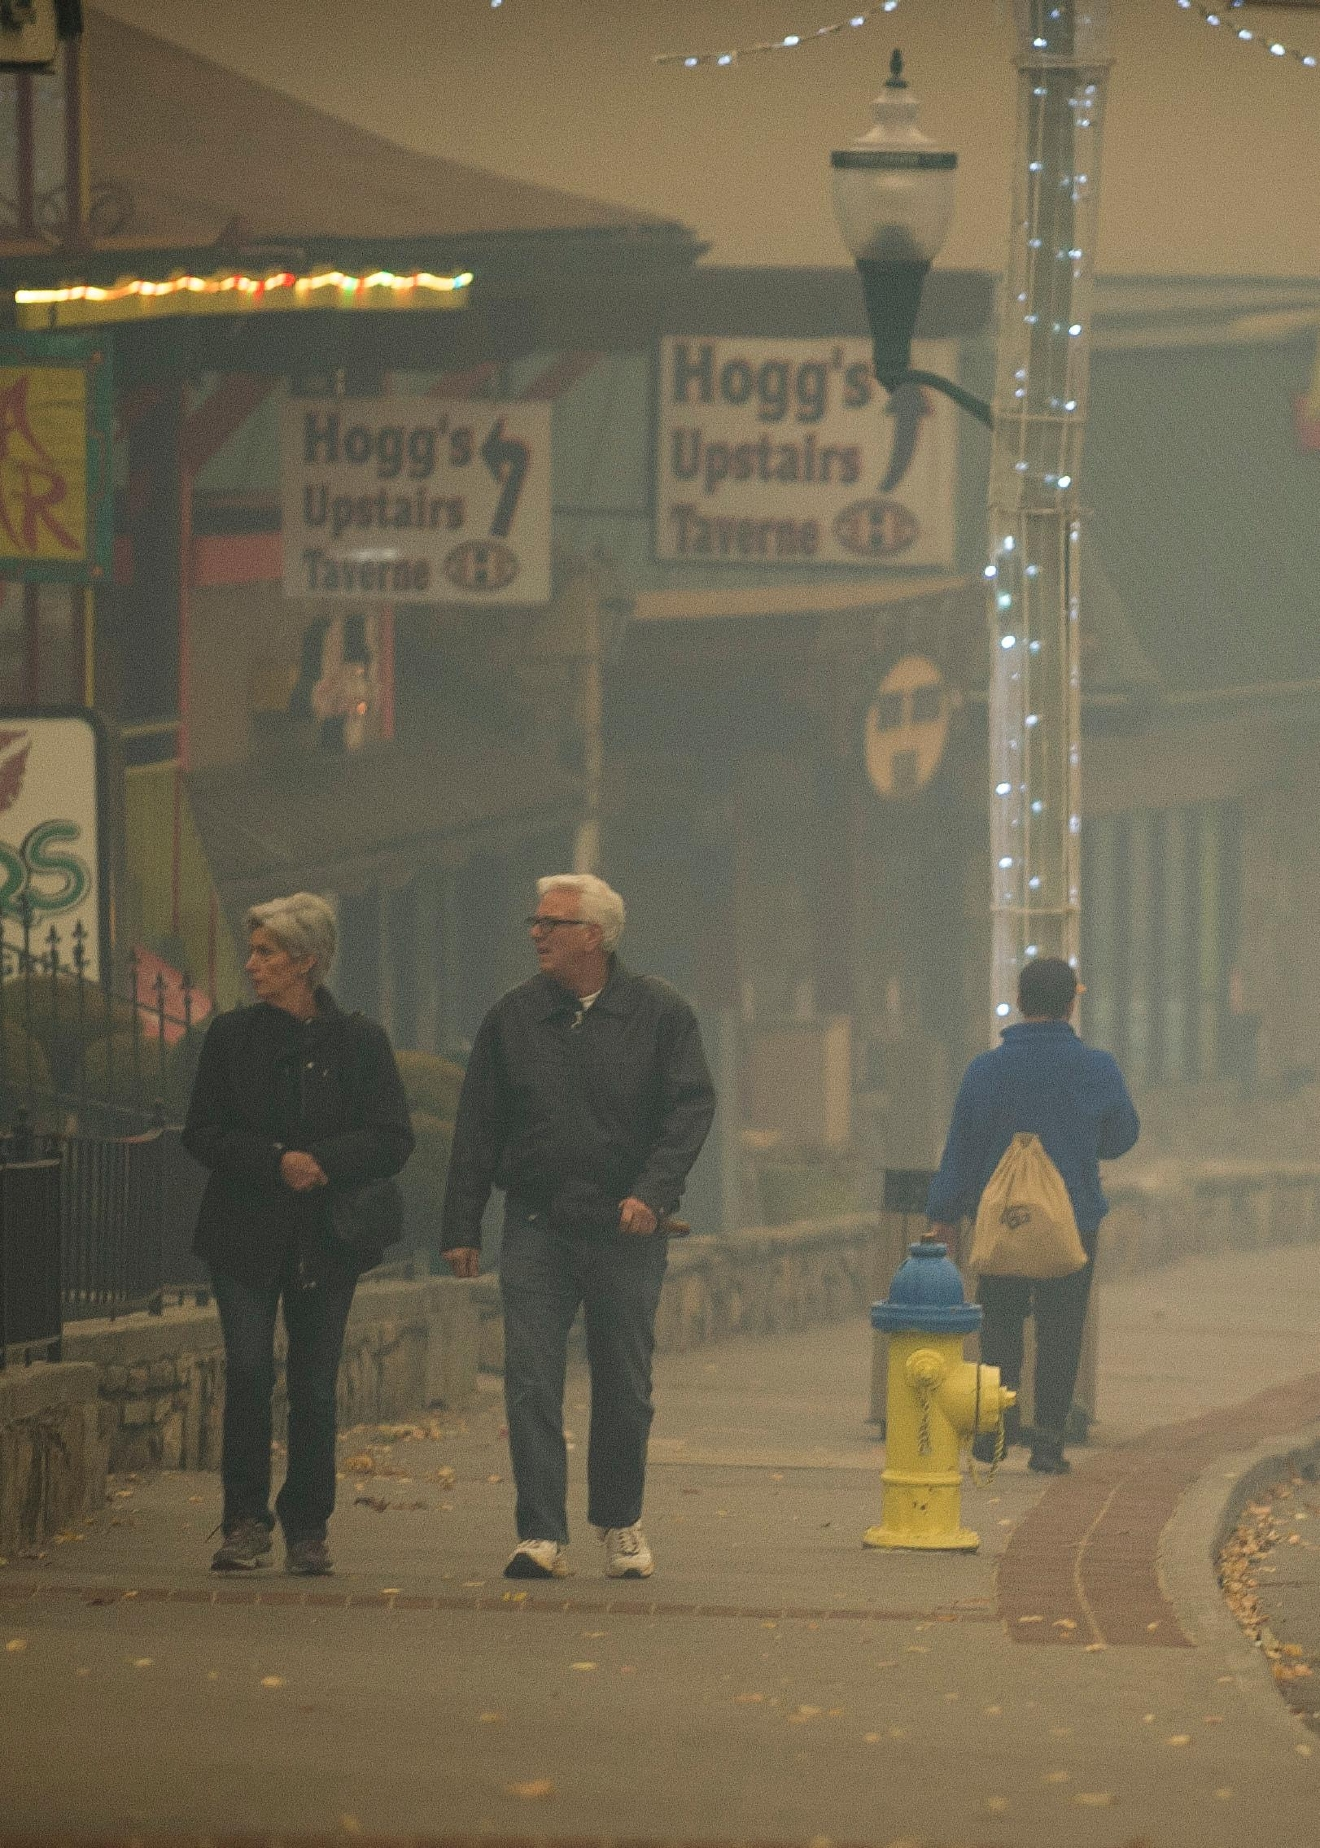 Thick smoke from area forest fires looms as people walk in Gatlinburg, Tenn., Monday, Nov. 28, 2016. Gatlinburg officials say several areas are being evacuated as a result of fires in and around Great Smoky Mountains National Park. (Brianna Paciorka/Knoxville News Sentinel via AP)